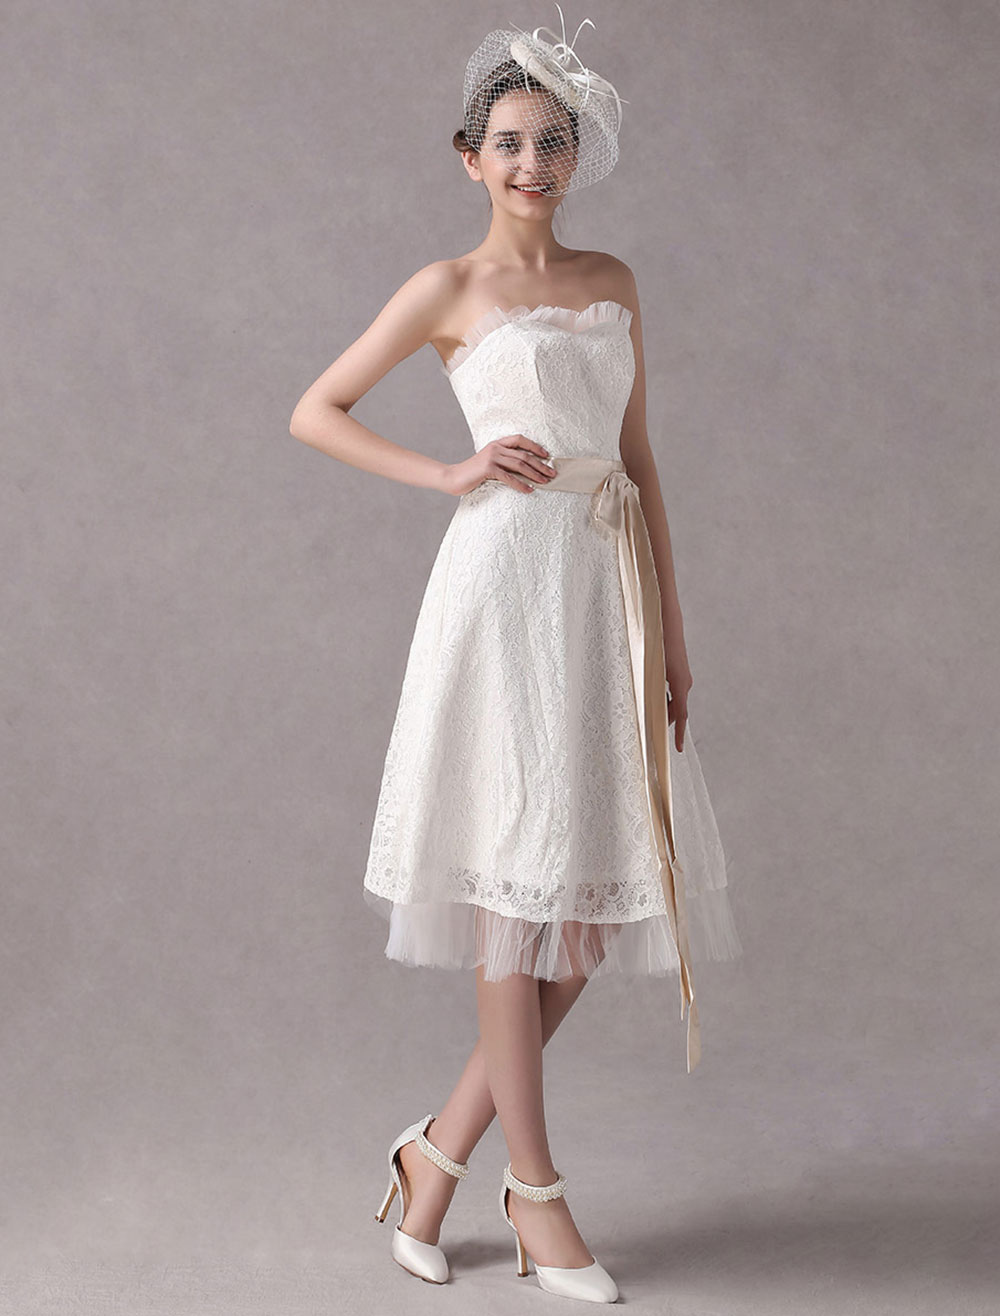 Short Simple Wedding Dresses Strapless Ivory Lace Bridal Dress